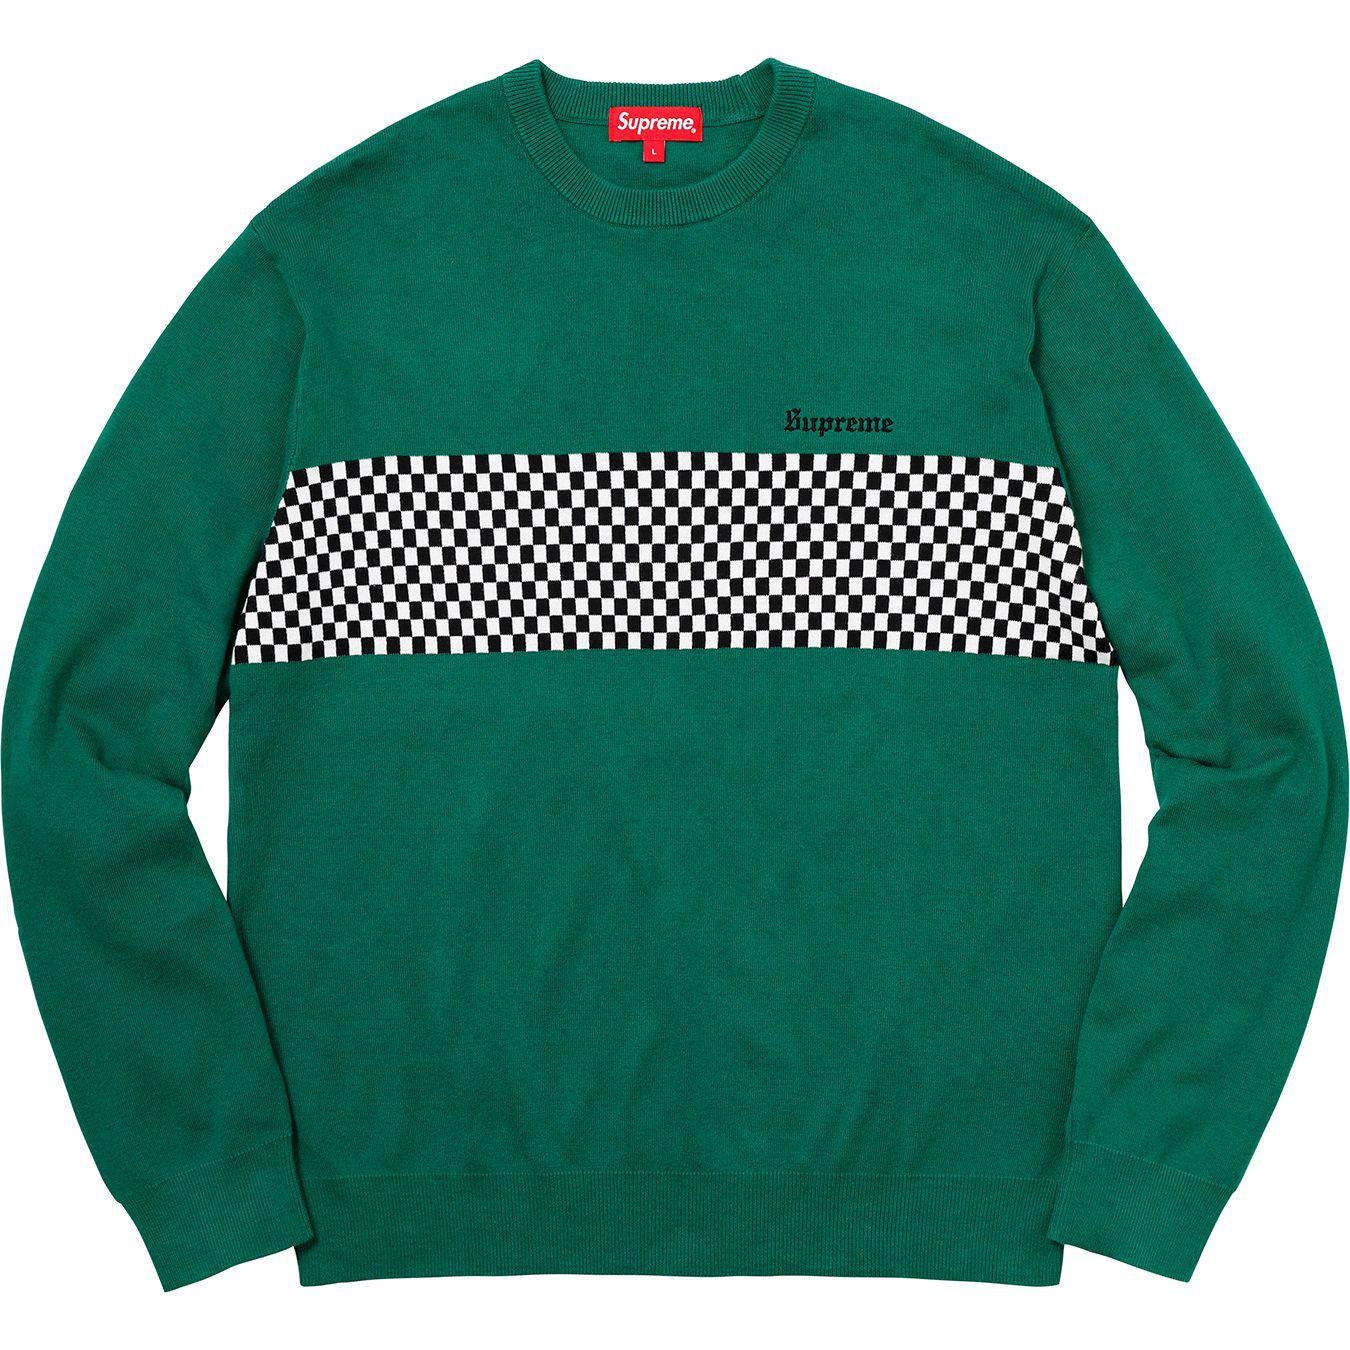 Supreme Sweater Men S Checkered Panel Crewneck Sweater Forest Green